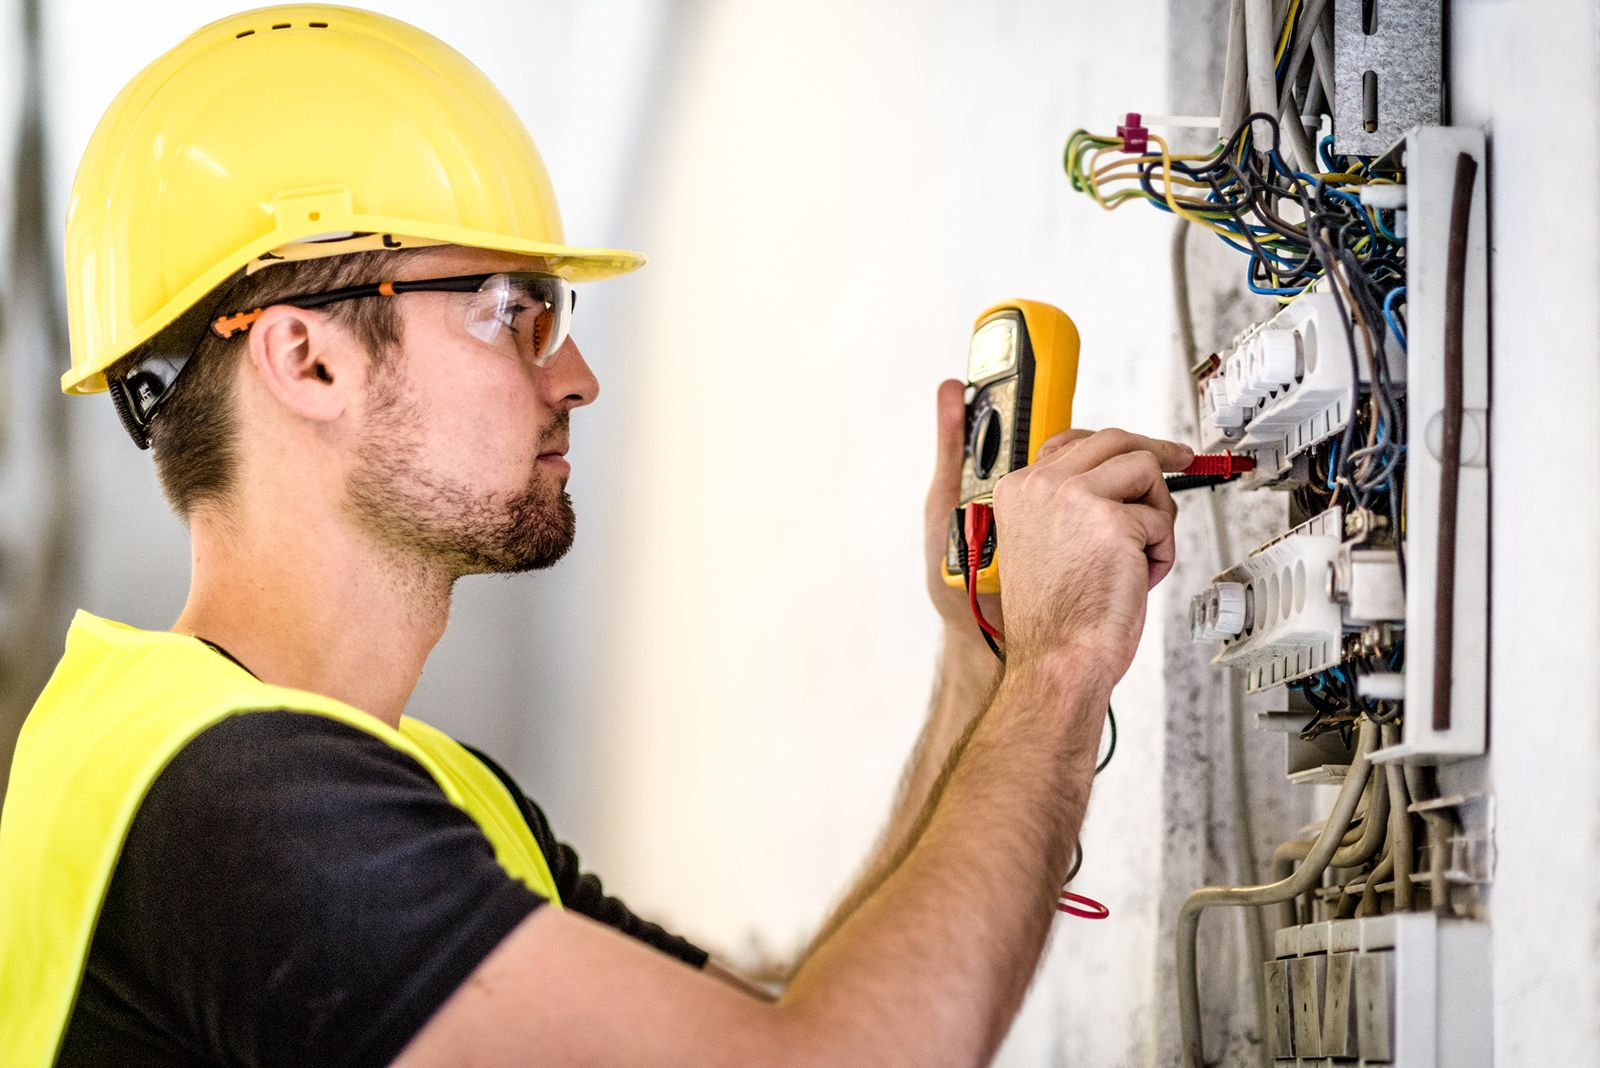 6 Qualities to Look for When Hiring Electricians